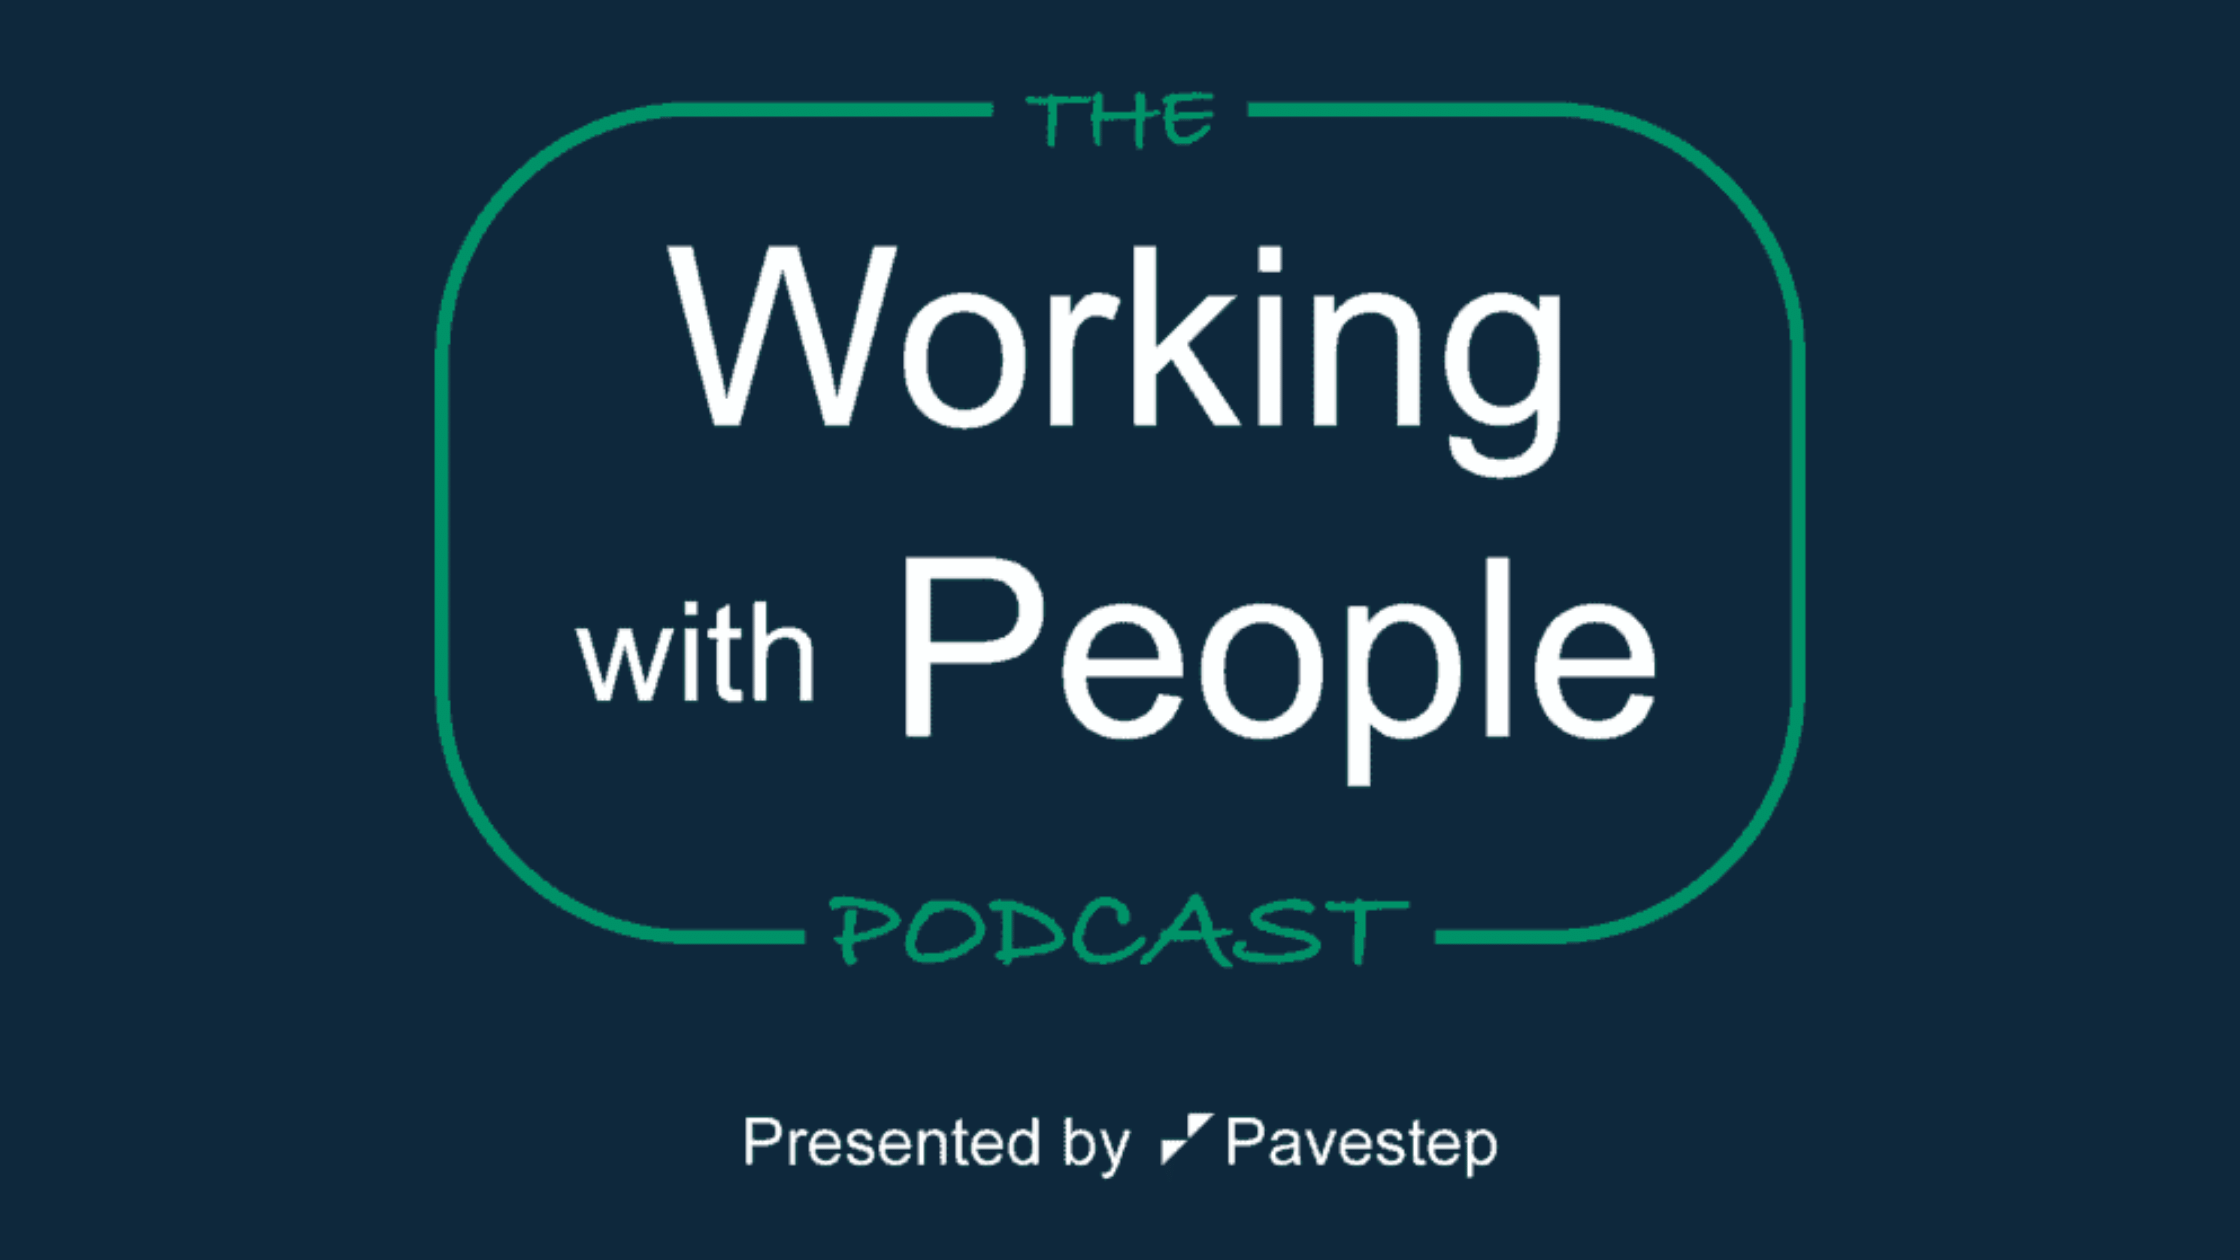 Working with People Podcast logo for espisode How flexible work increases women in the workplace